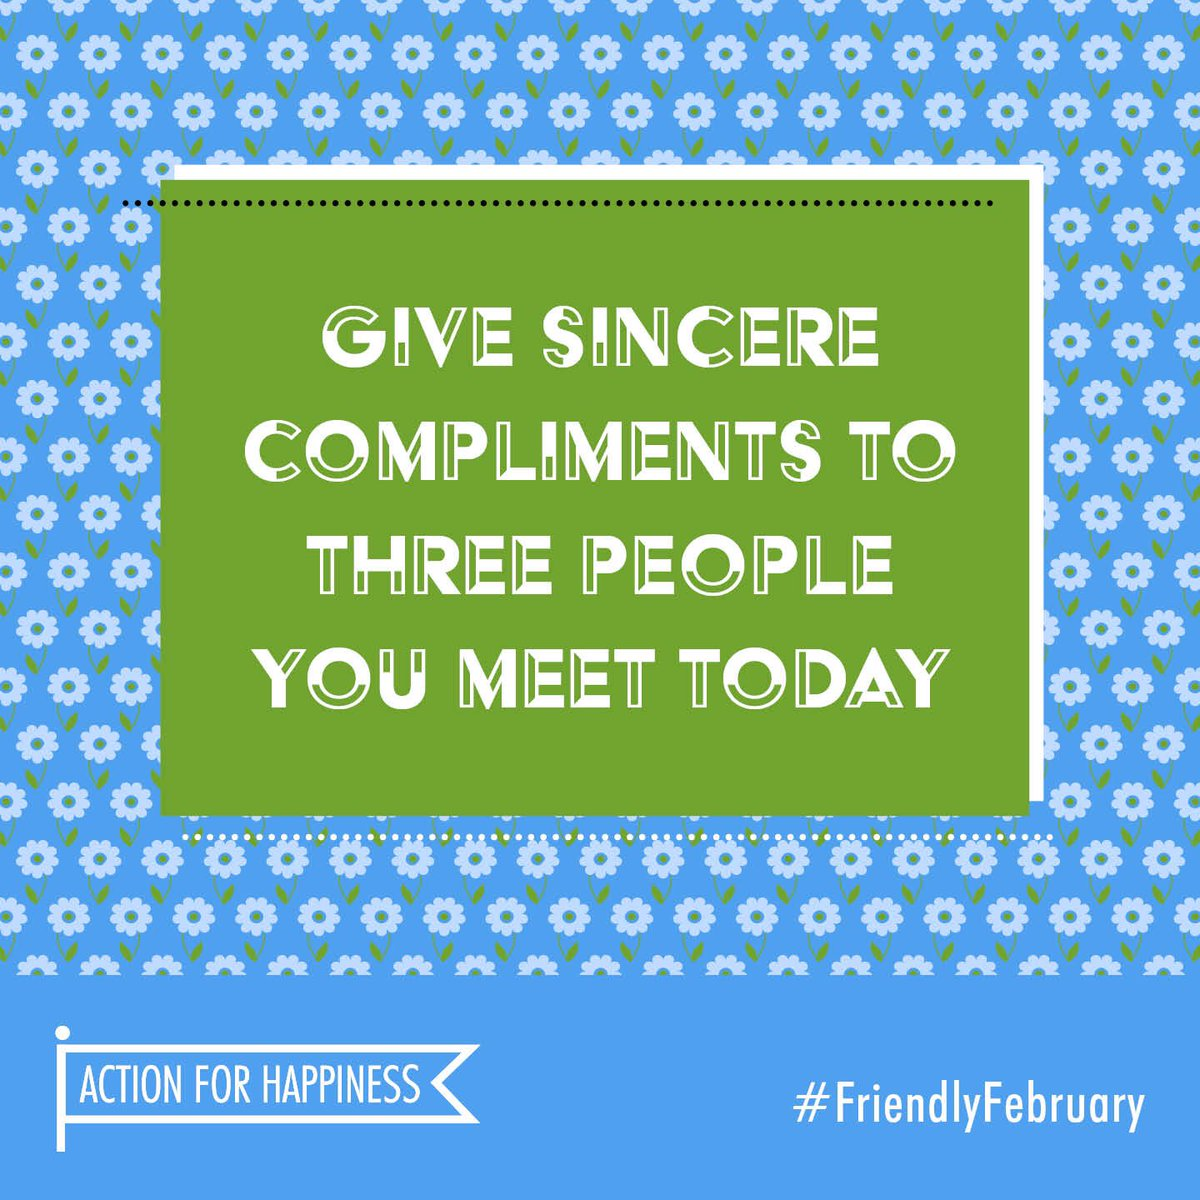 Friendly February - Day 21: Give sincere compliments to three people you meet today actionforhappiness.org/friendly-febru… #FriendlyFebruary